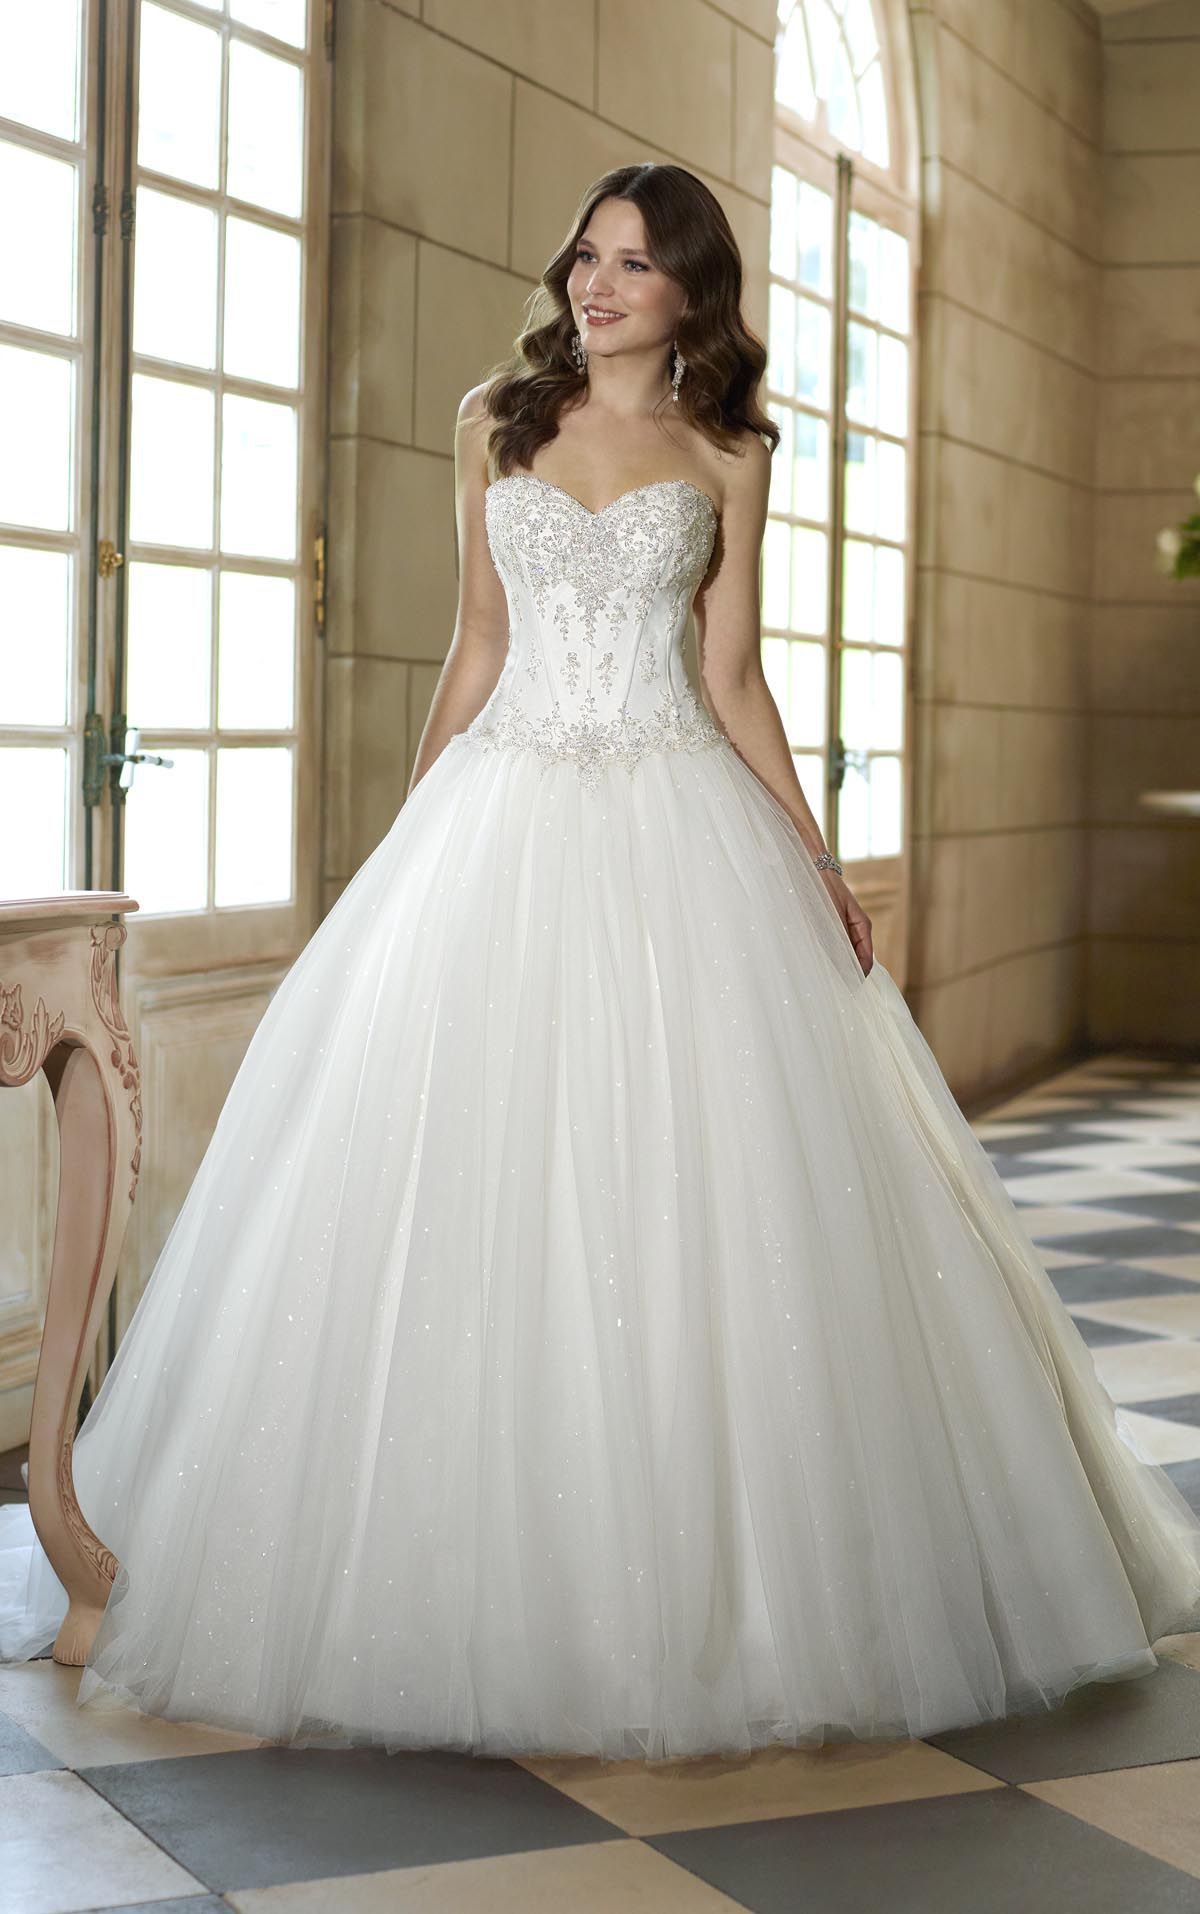 16 Best Ball Gown Wedding Dresses Ideas | Ball gowns, Dress ideas ...